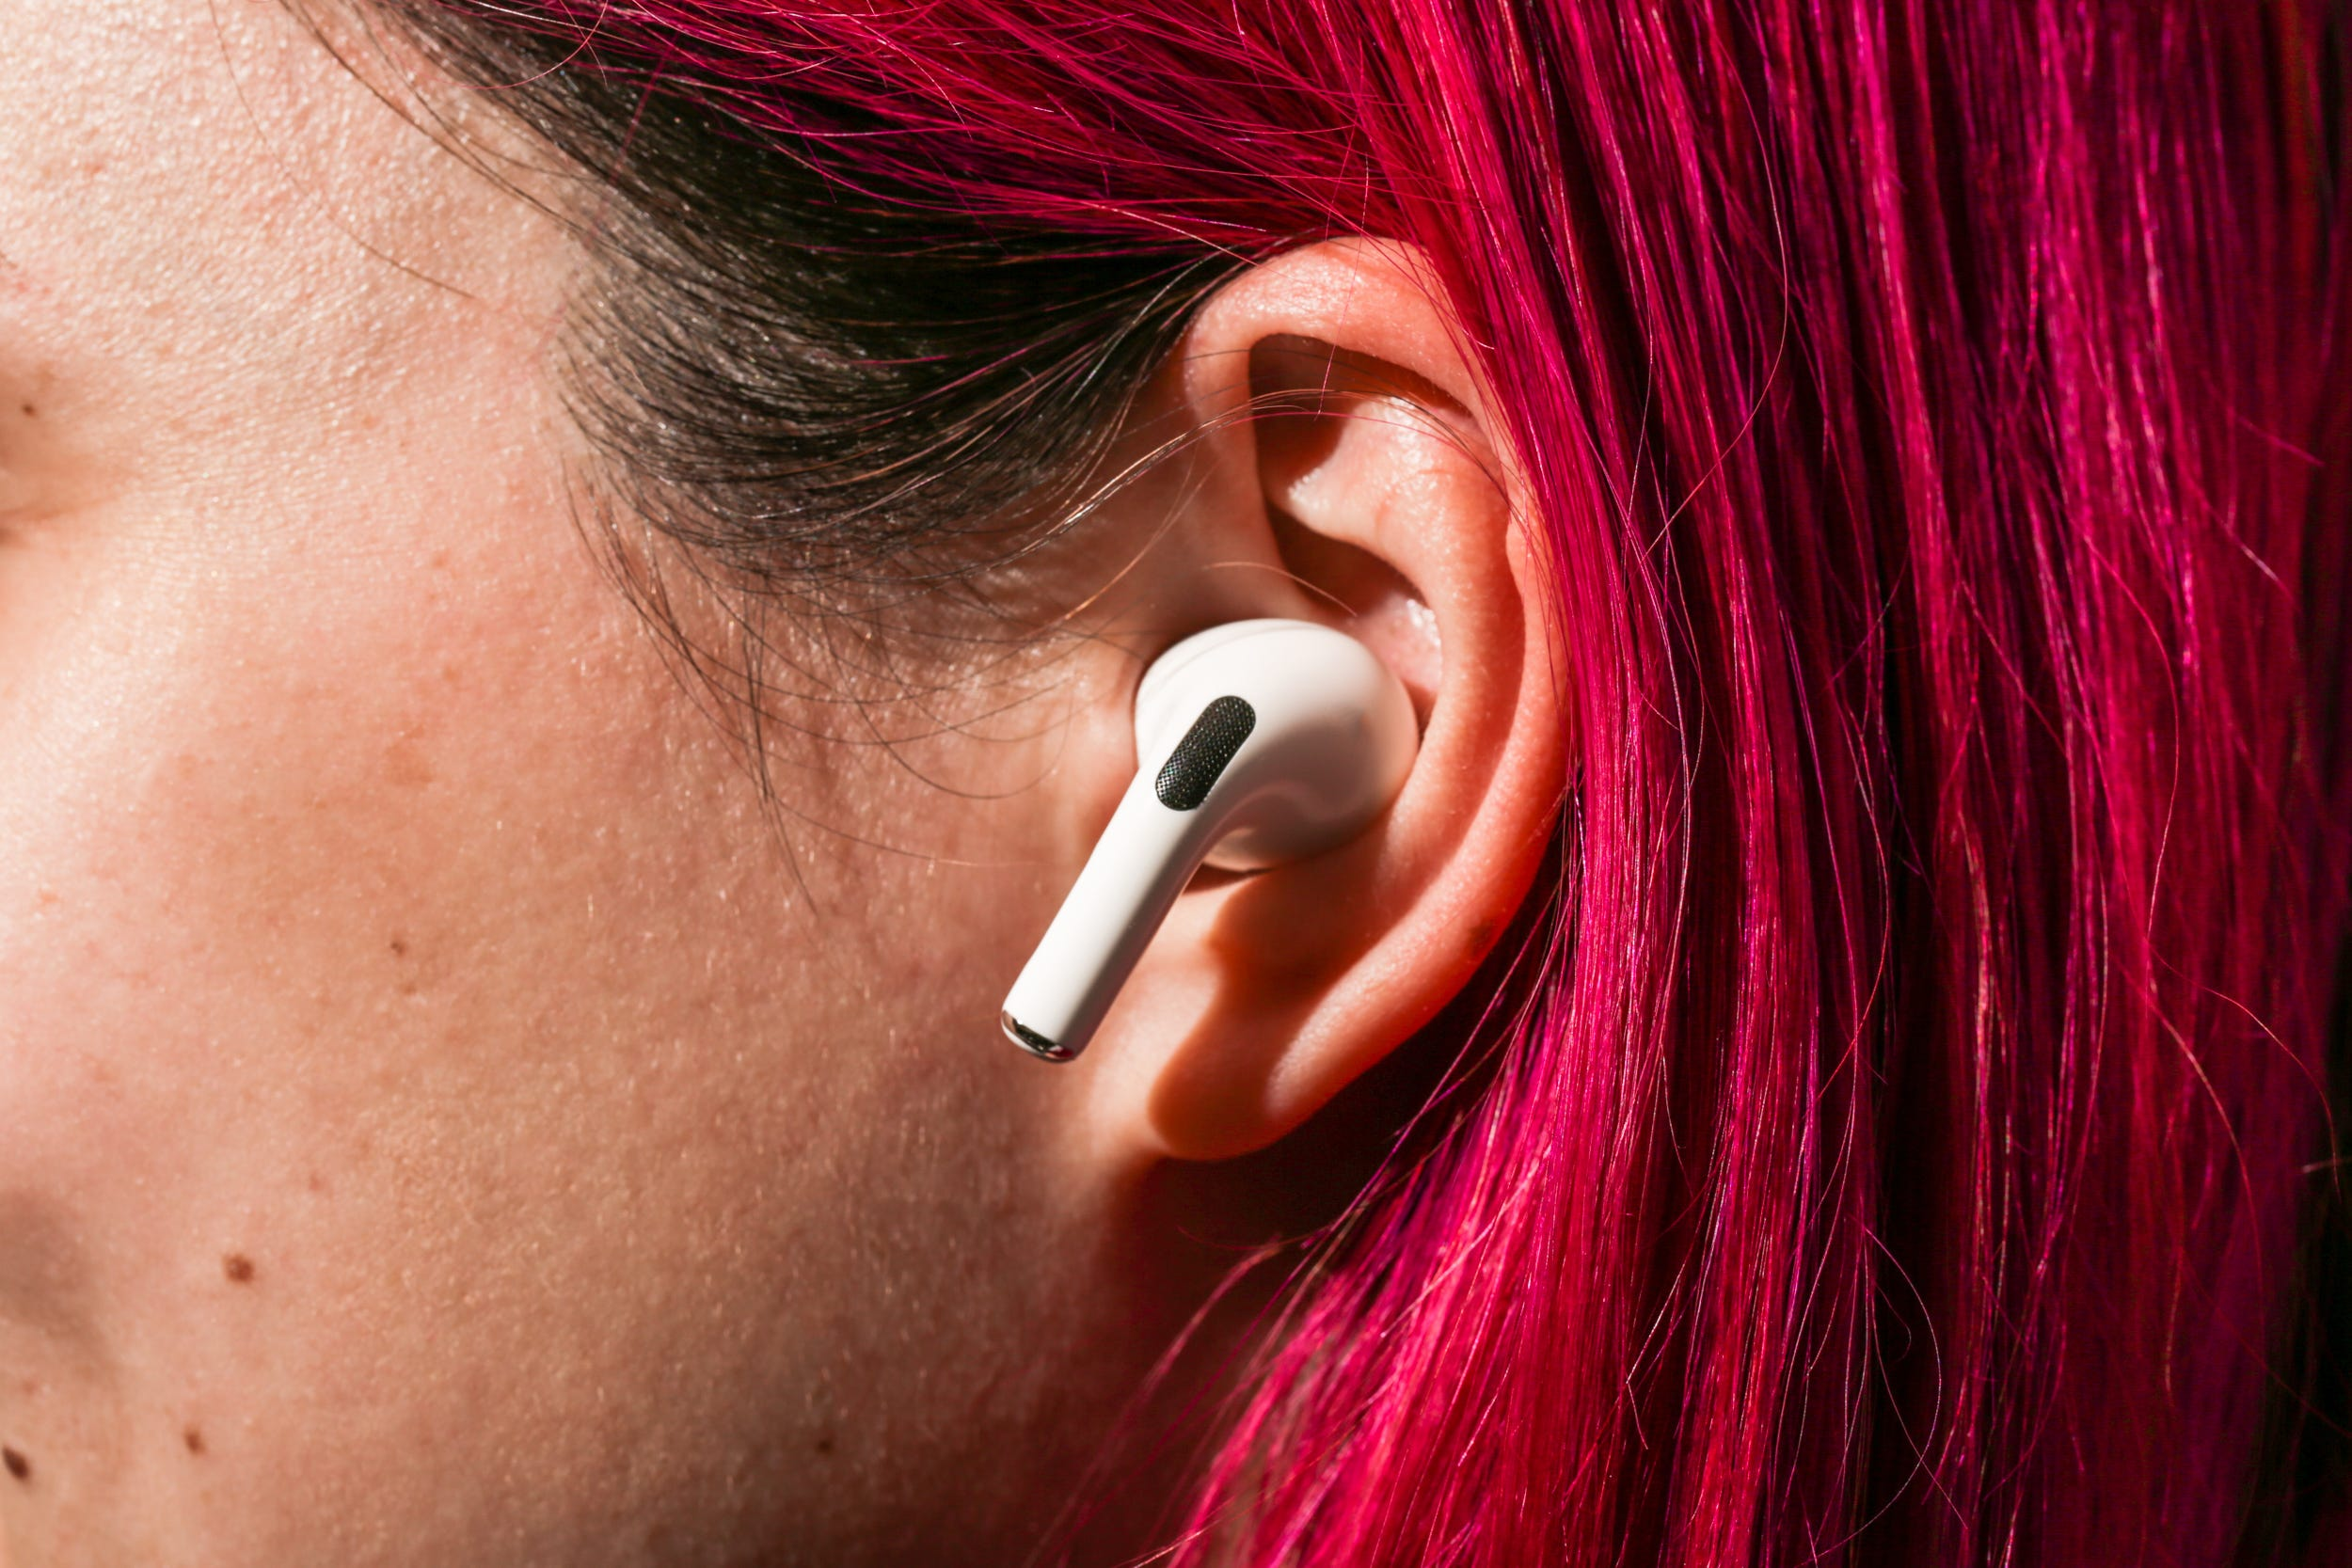 Setting Up, Customizing, and Using Apple AirPods: The Ultimate Guide